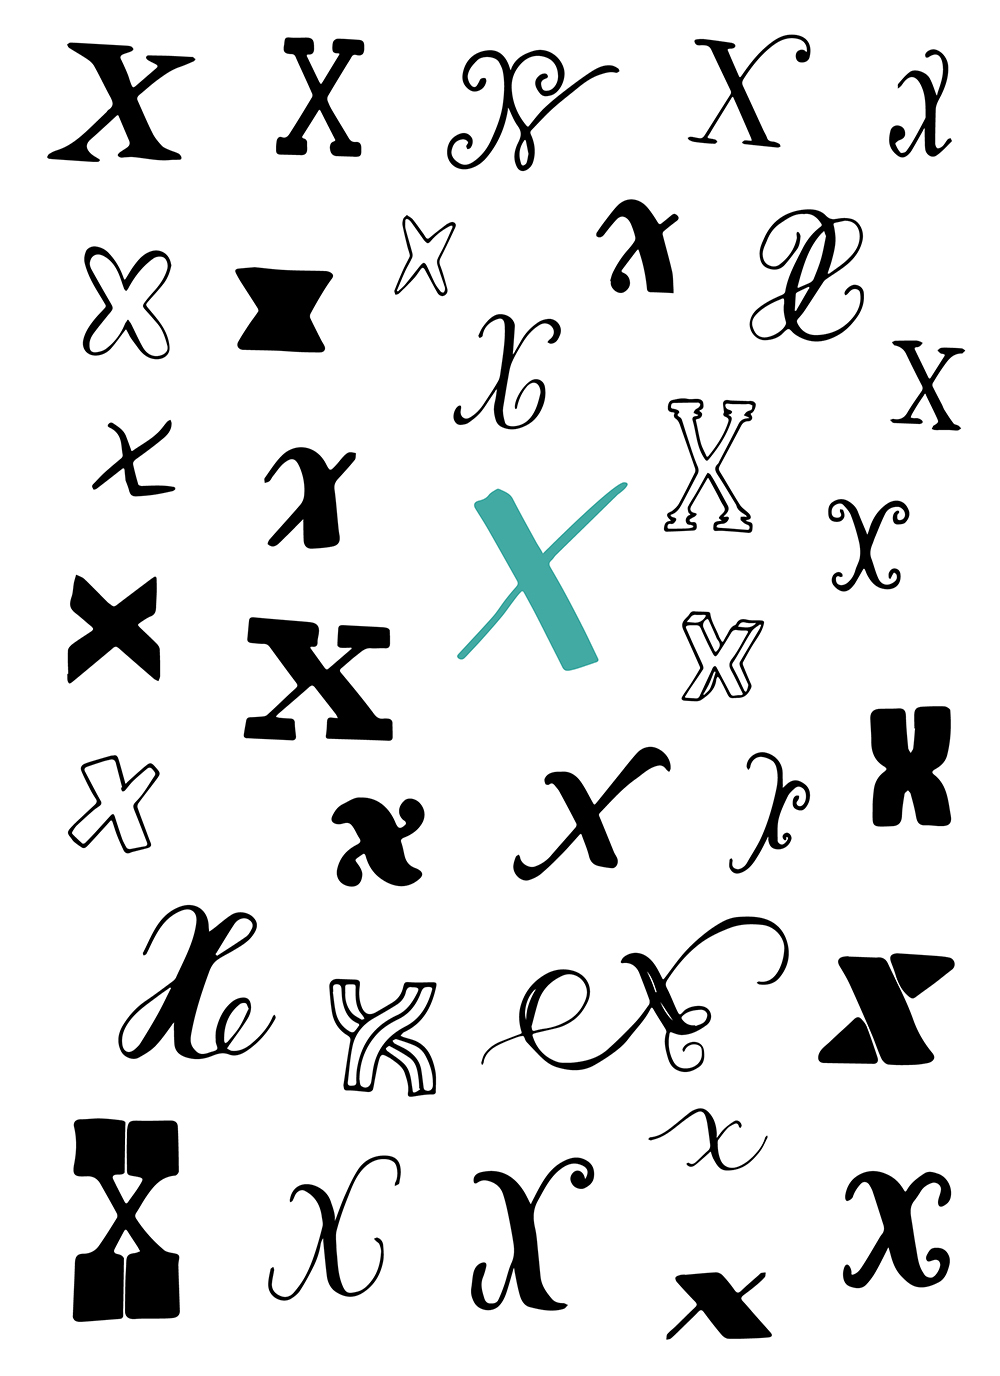 Alphabet_Exploration-24.jpg